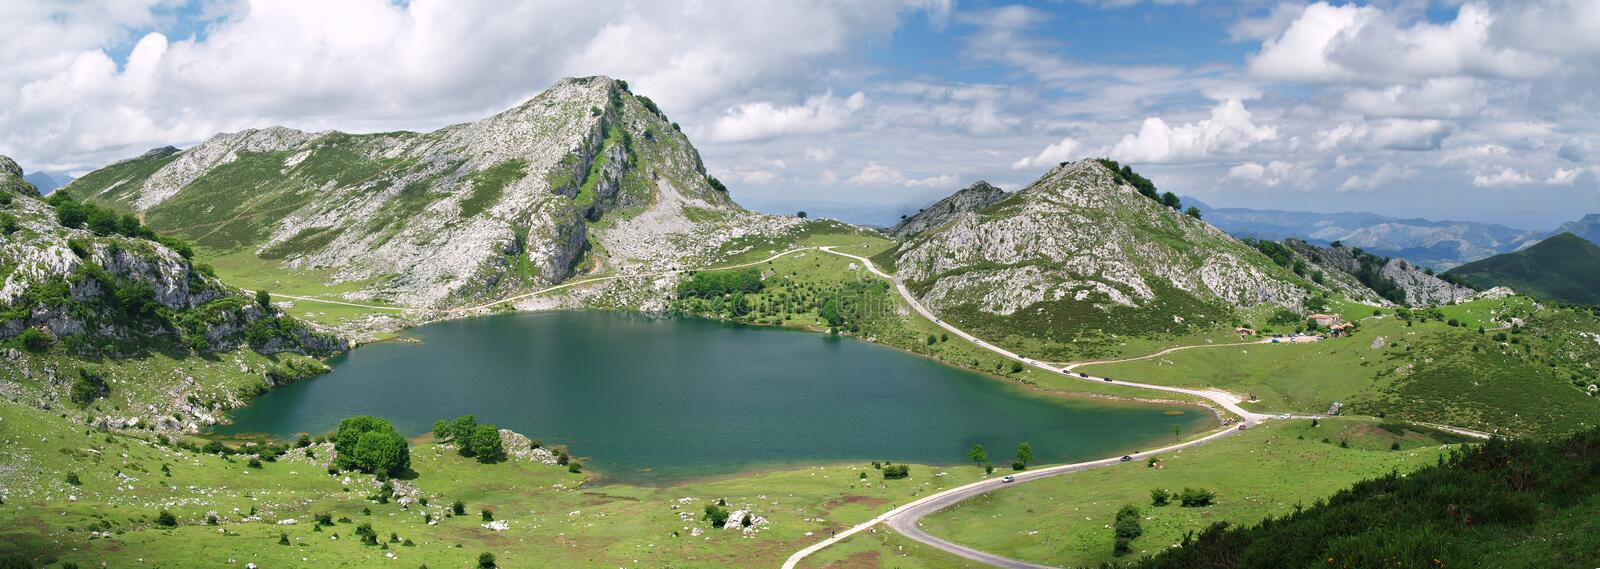 Download Covadonga Lakes, Spain stock image. Image of mountain - 10242115